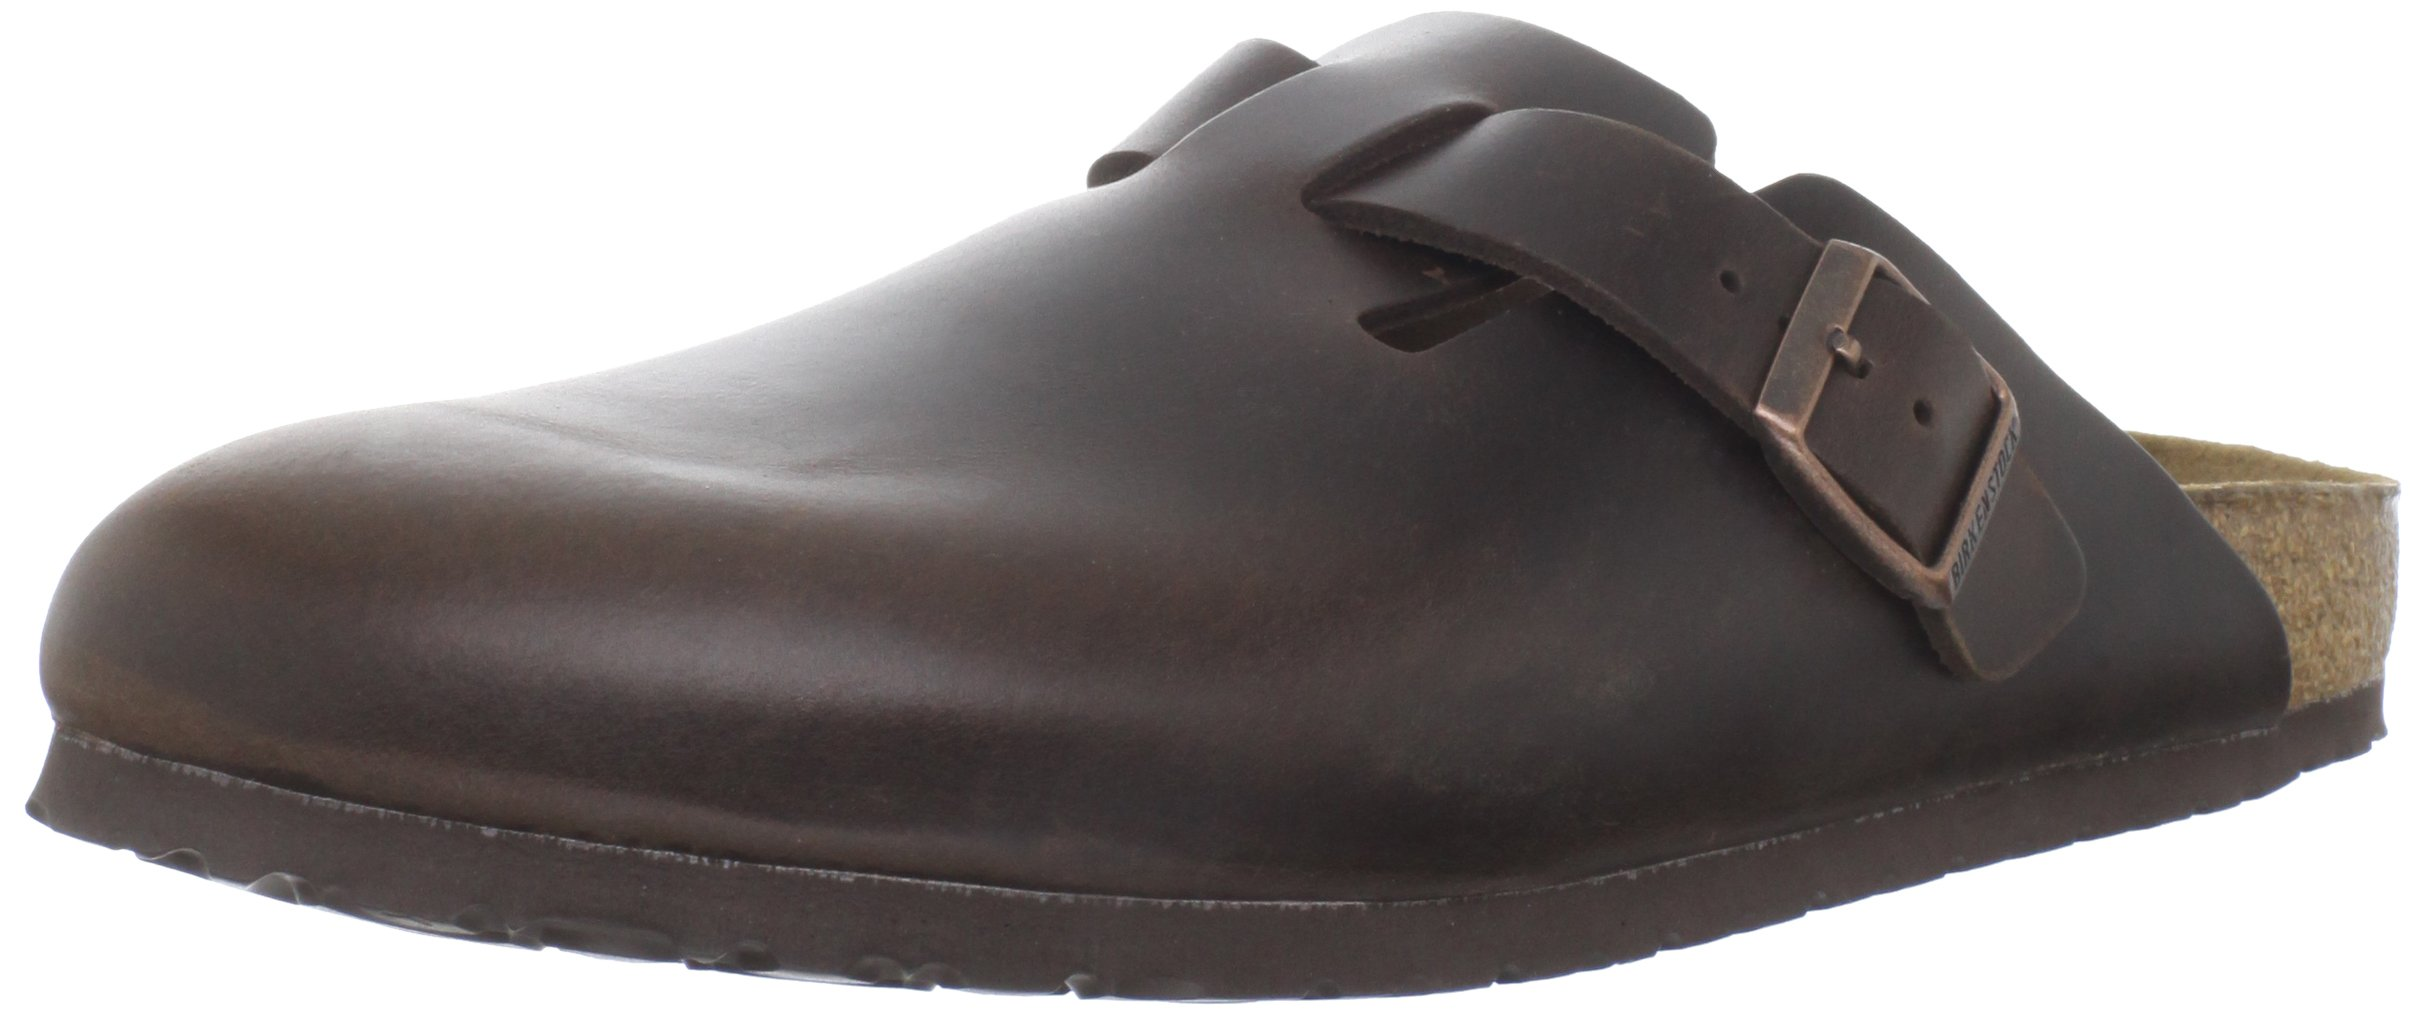 Birkenstock Unisex Boston Soft Footbed, Brown Amalfi Leather, 38 M EU